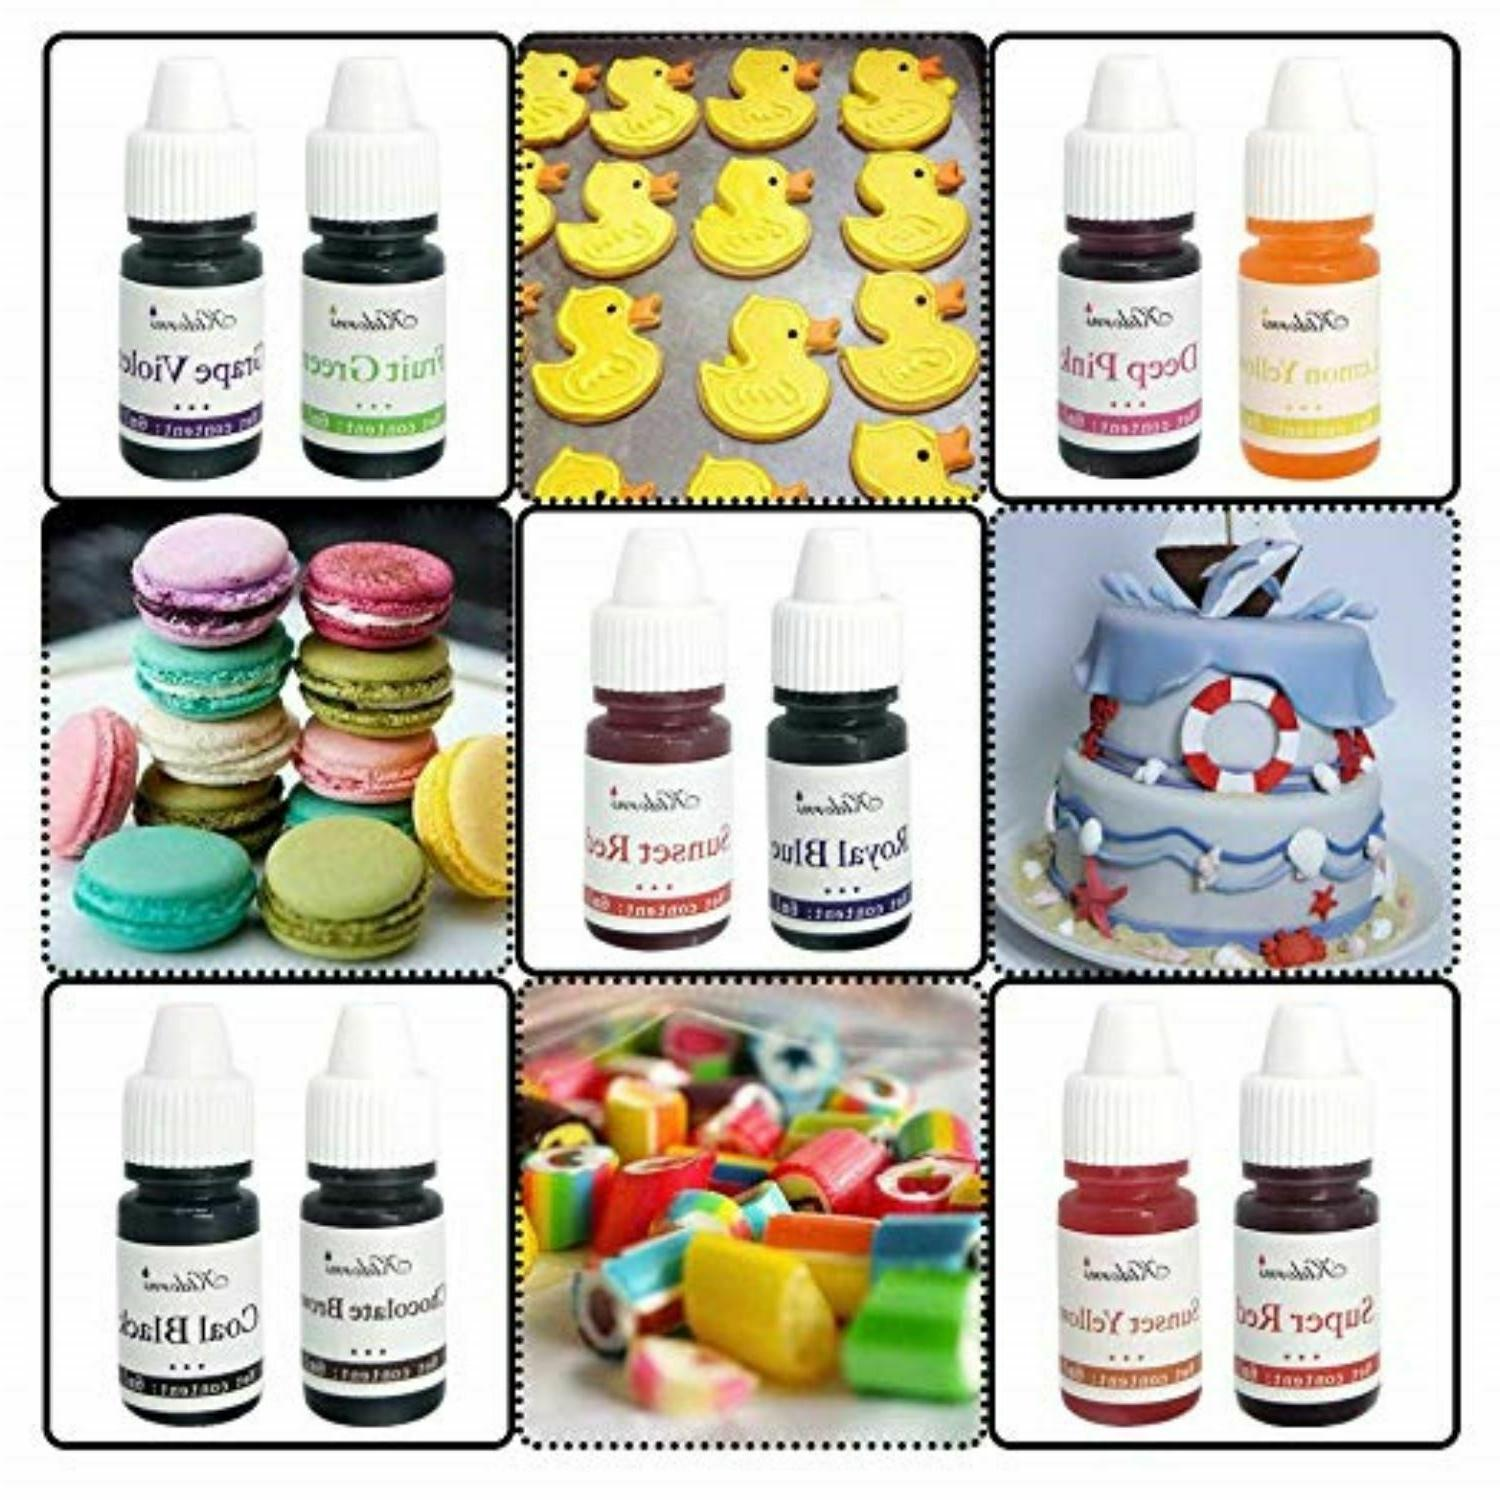 10 COLOR CAKE Liqua Coloring Baking Set Cooking New